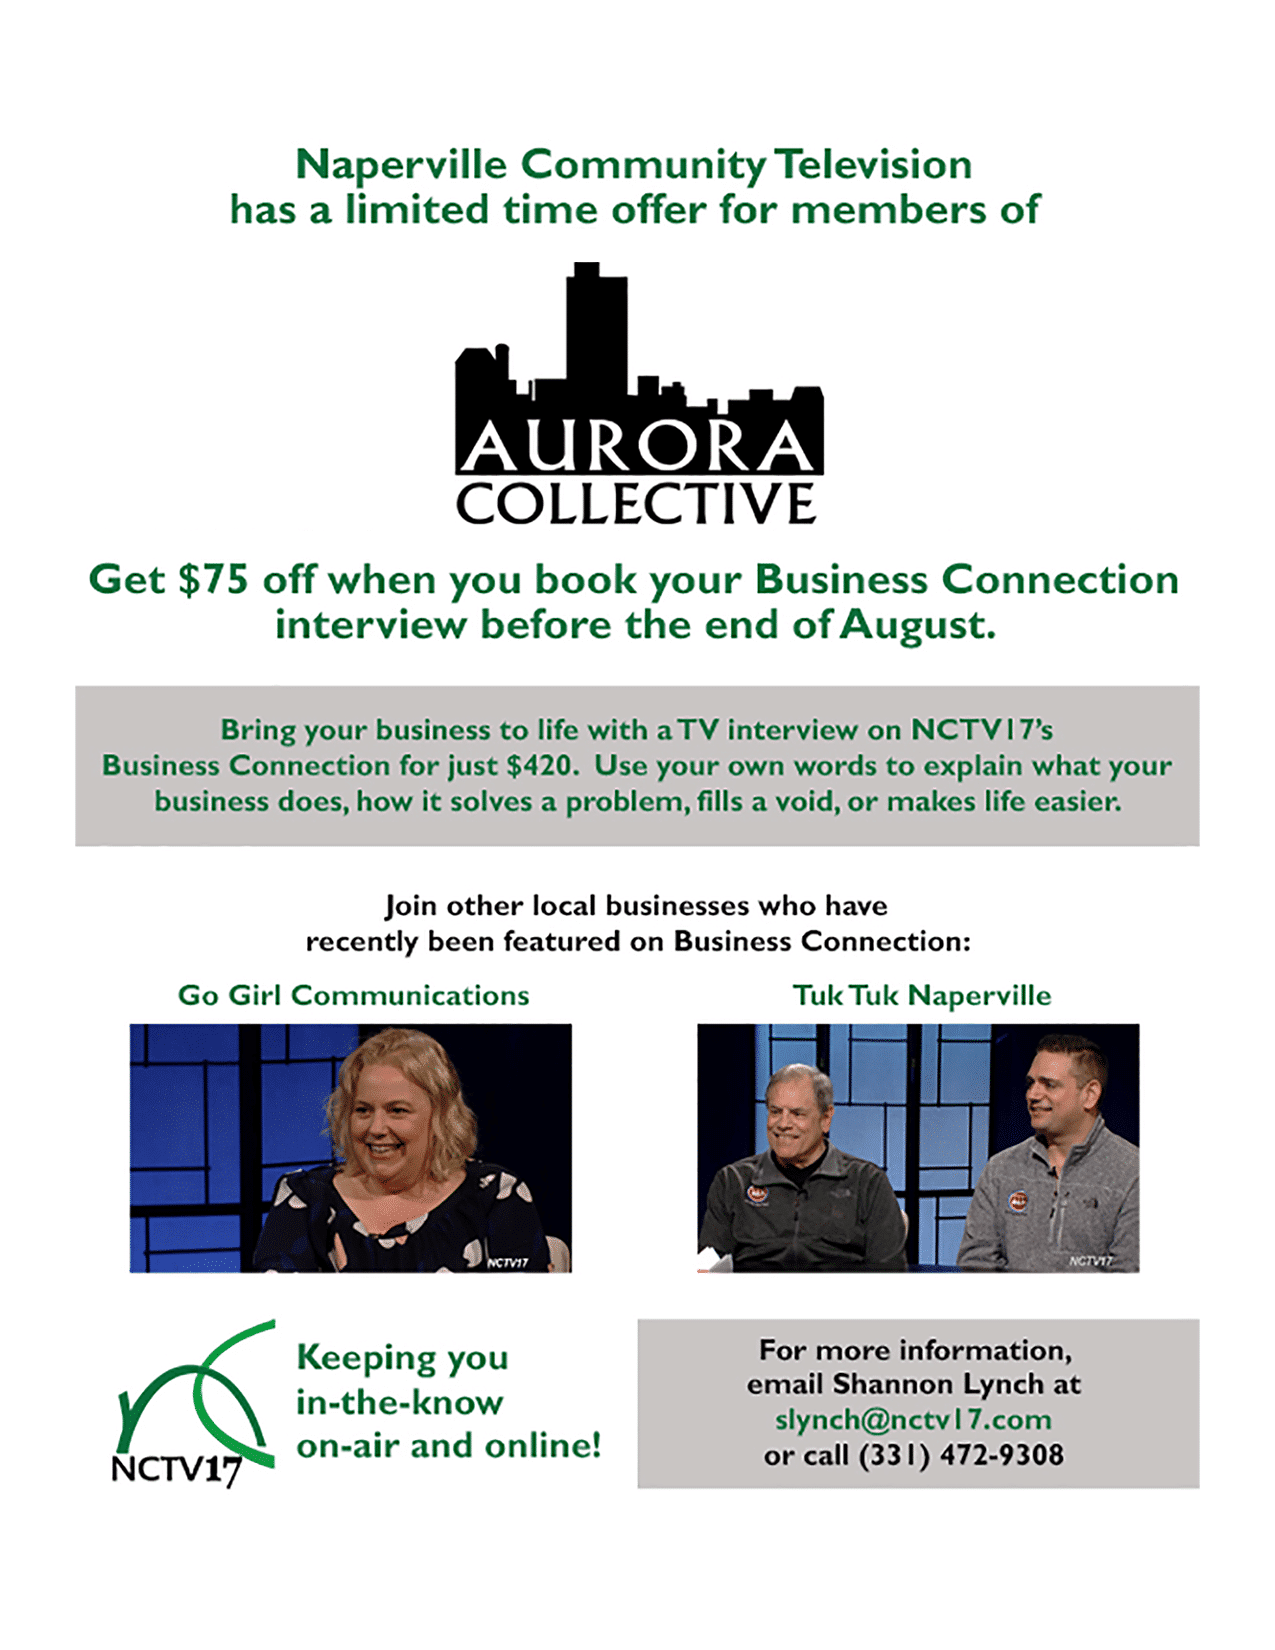 Aurora Collective - Business Connection Offer